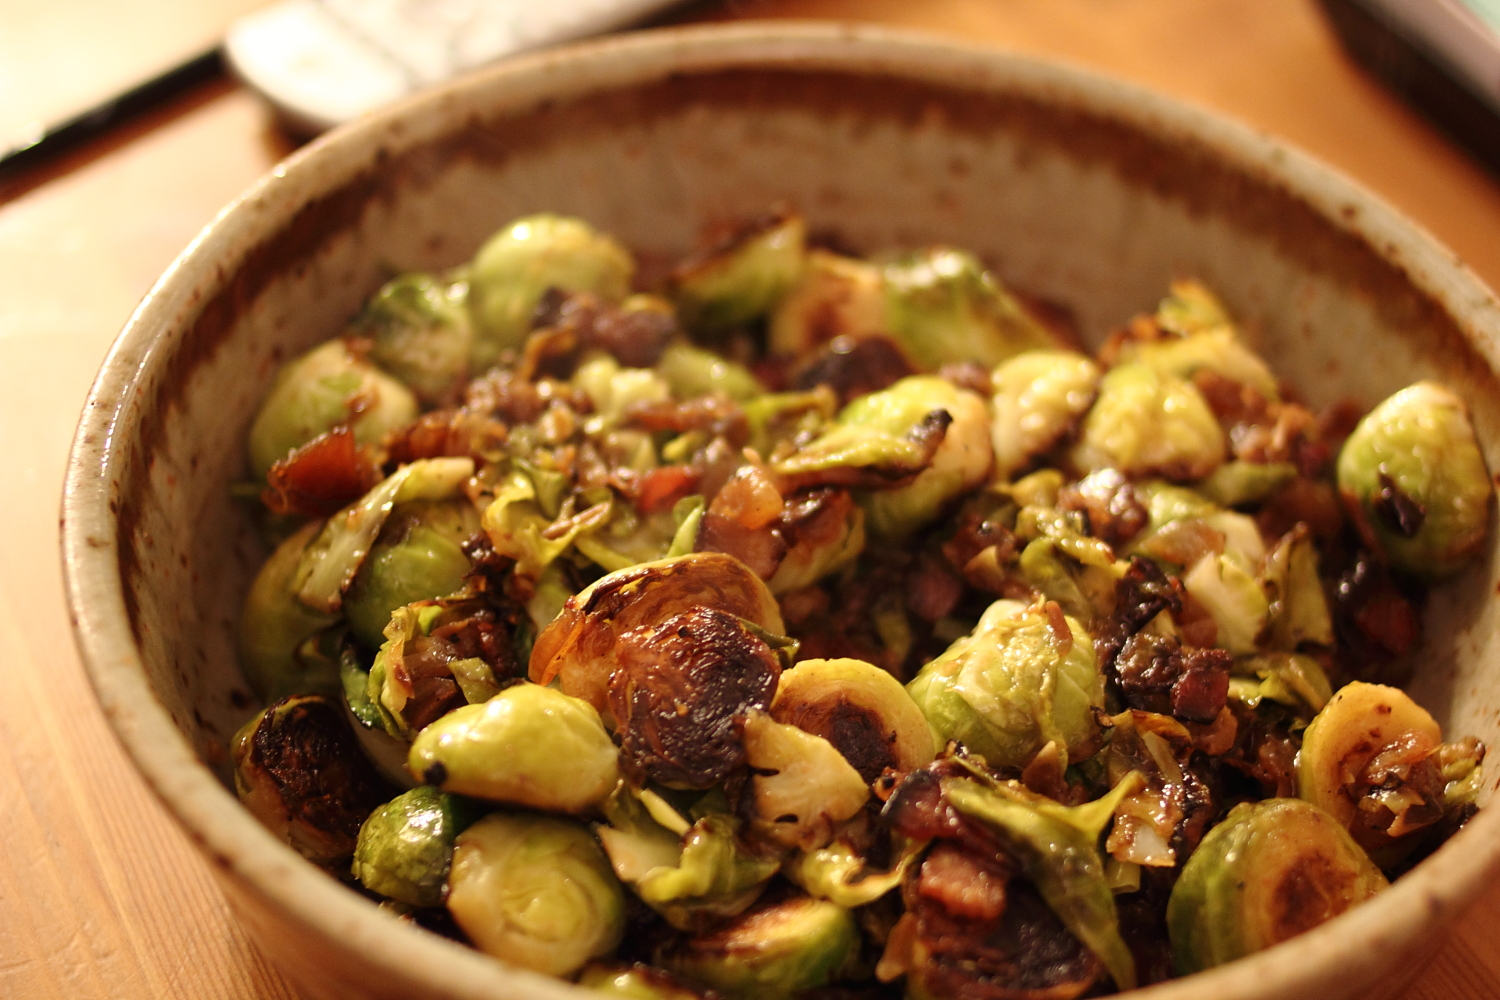 Smith's Brussels sprouts with bacon and dates | LKJC Berlin